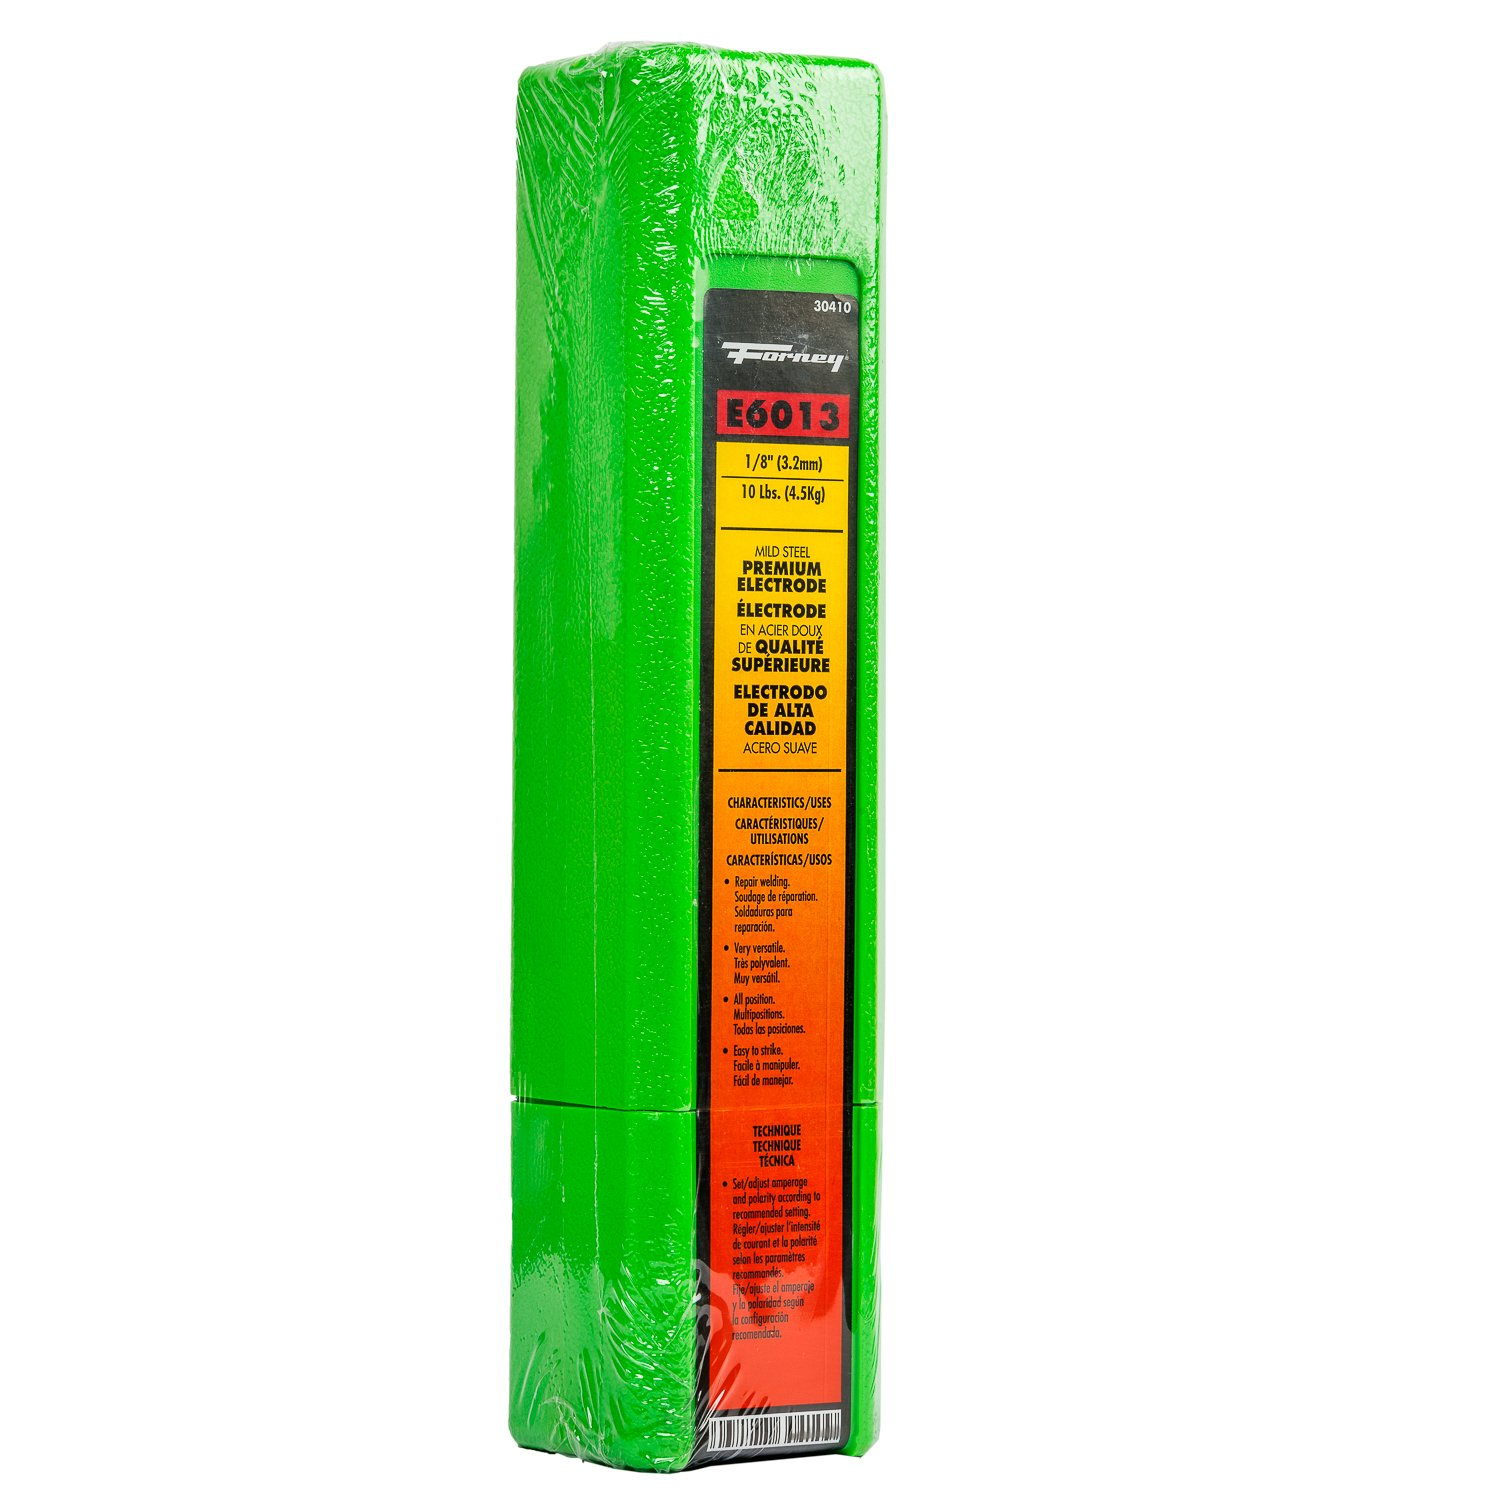 Forney 30505 E6013 Welding Rod, 5/32-Inch, 5-Pound - Arc Welding Rods - Amazon.com